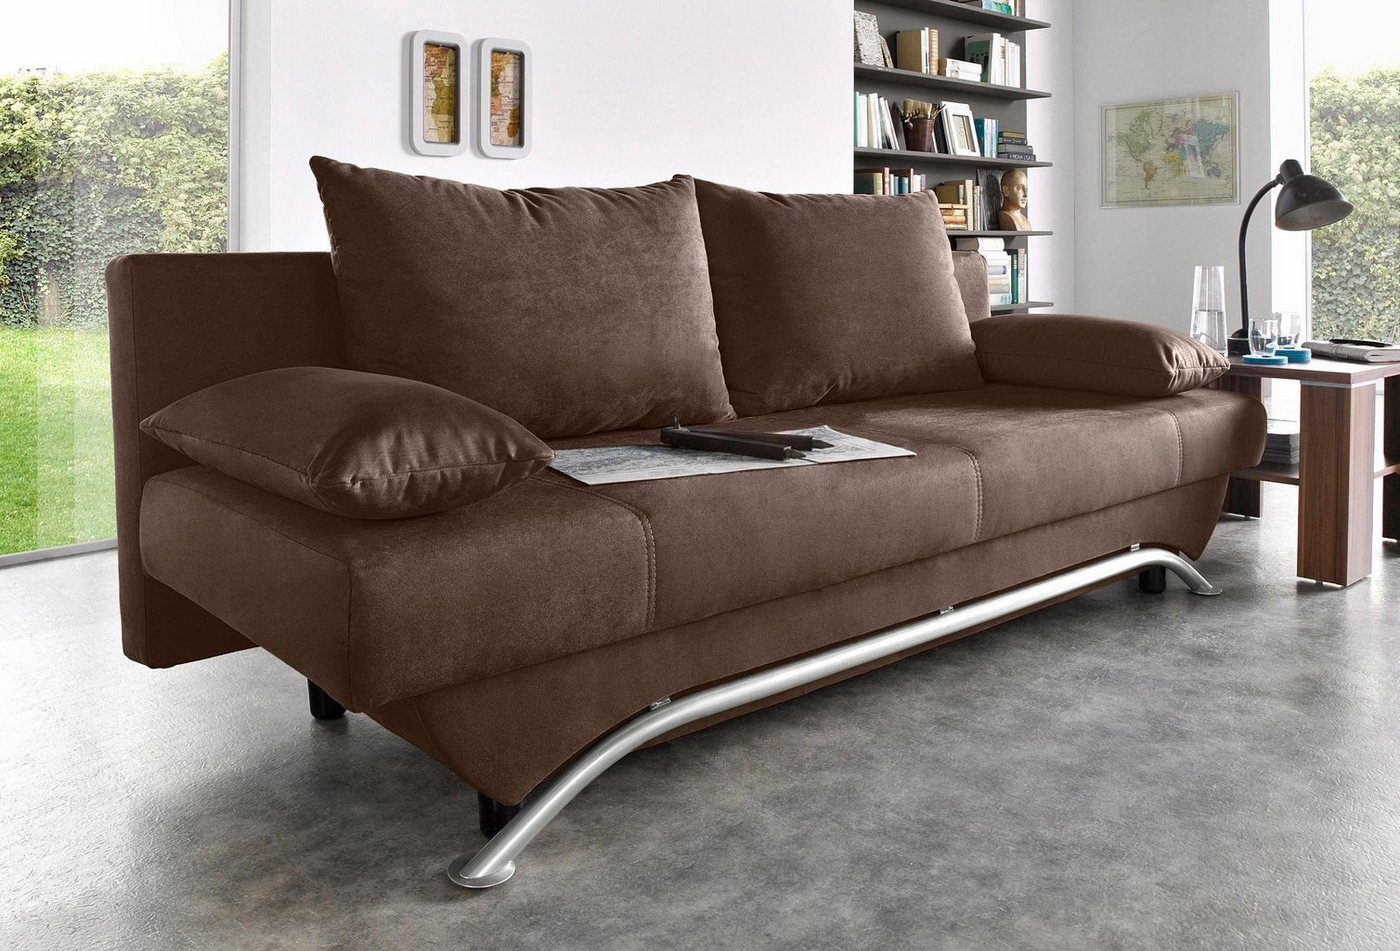 Schlafsofas - Places of Style Schlafsofa  - Onlineshop OTTO